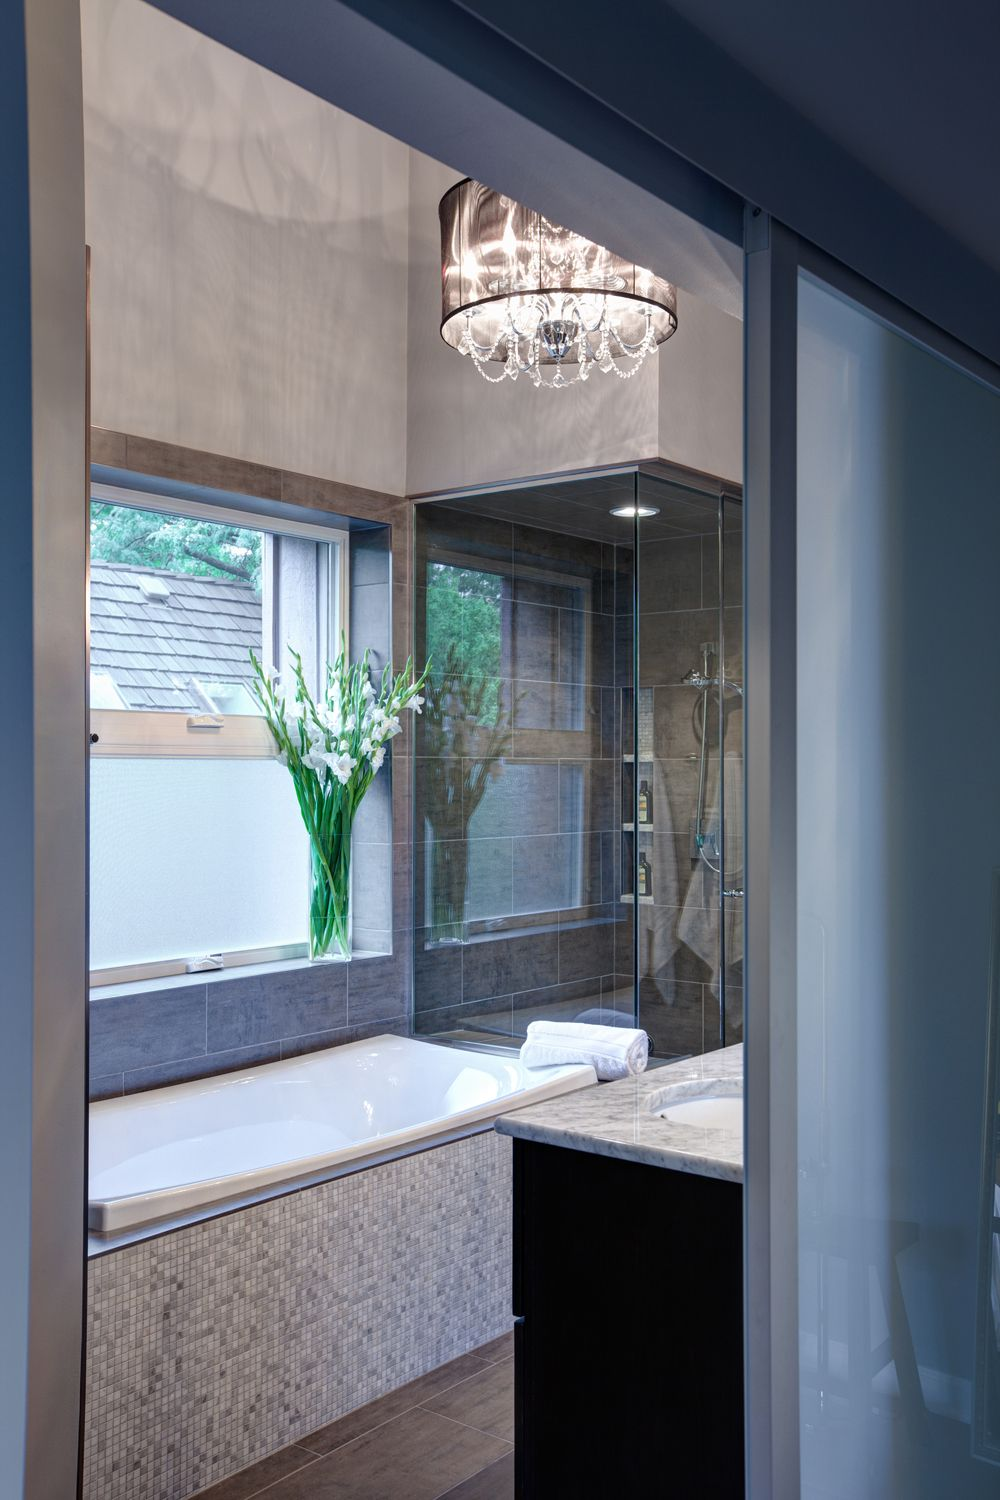 Houzz Home Design Decorating And Remodeling Ideas Inspiration Kitchen Bathroom